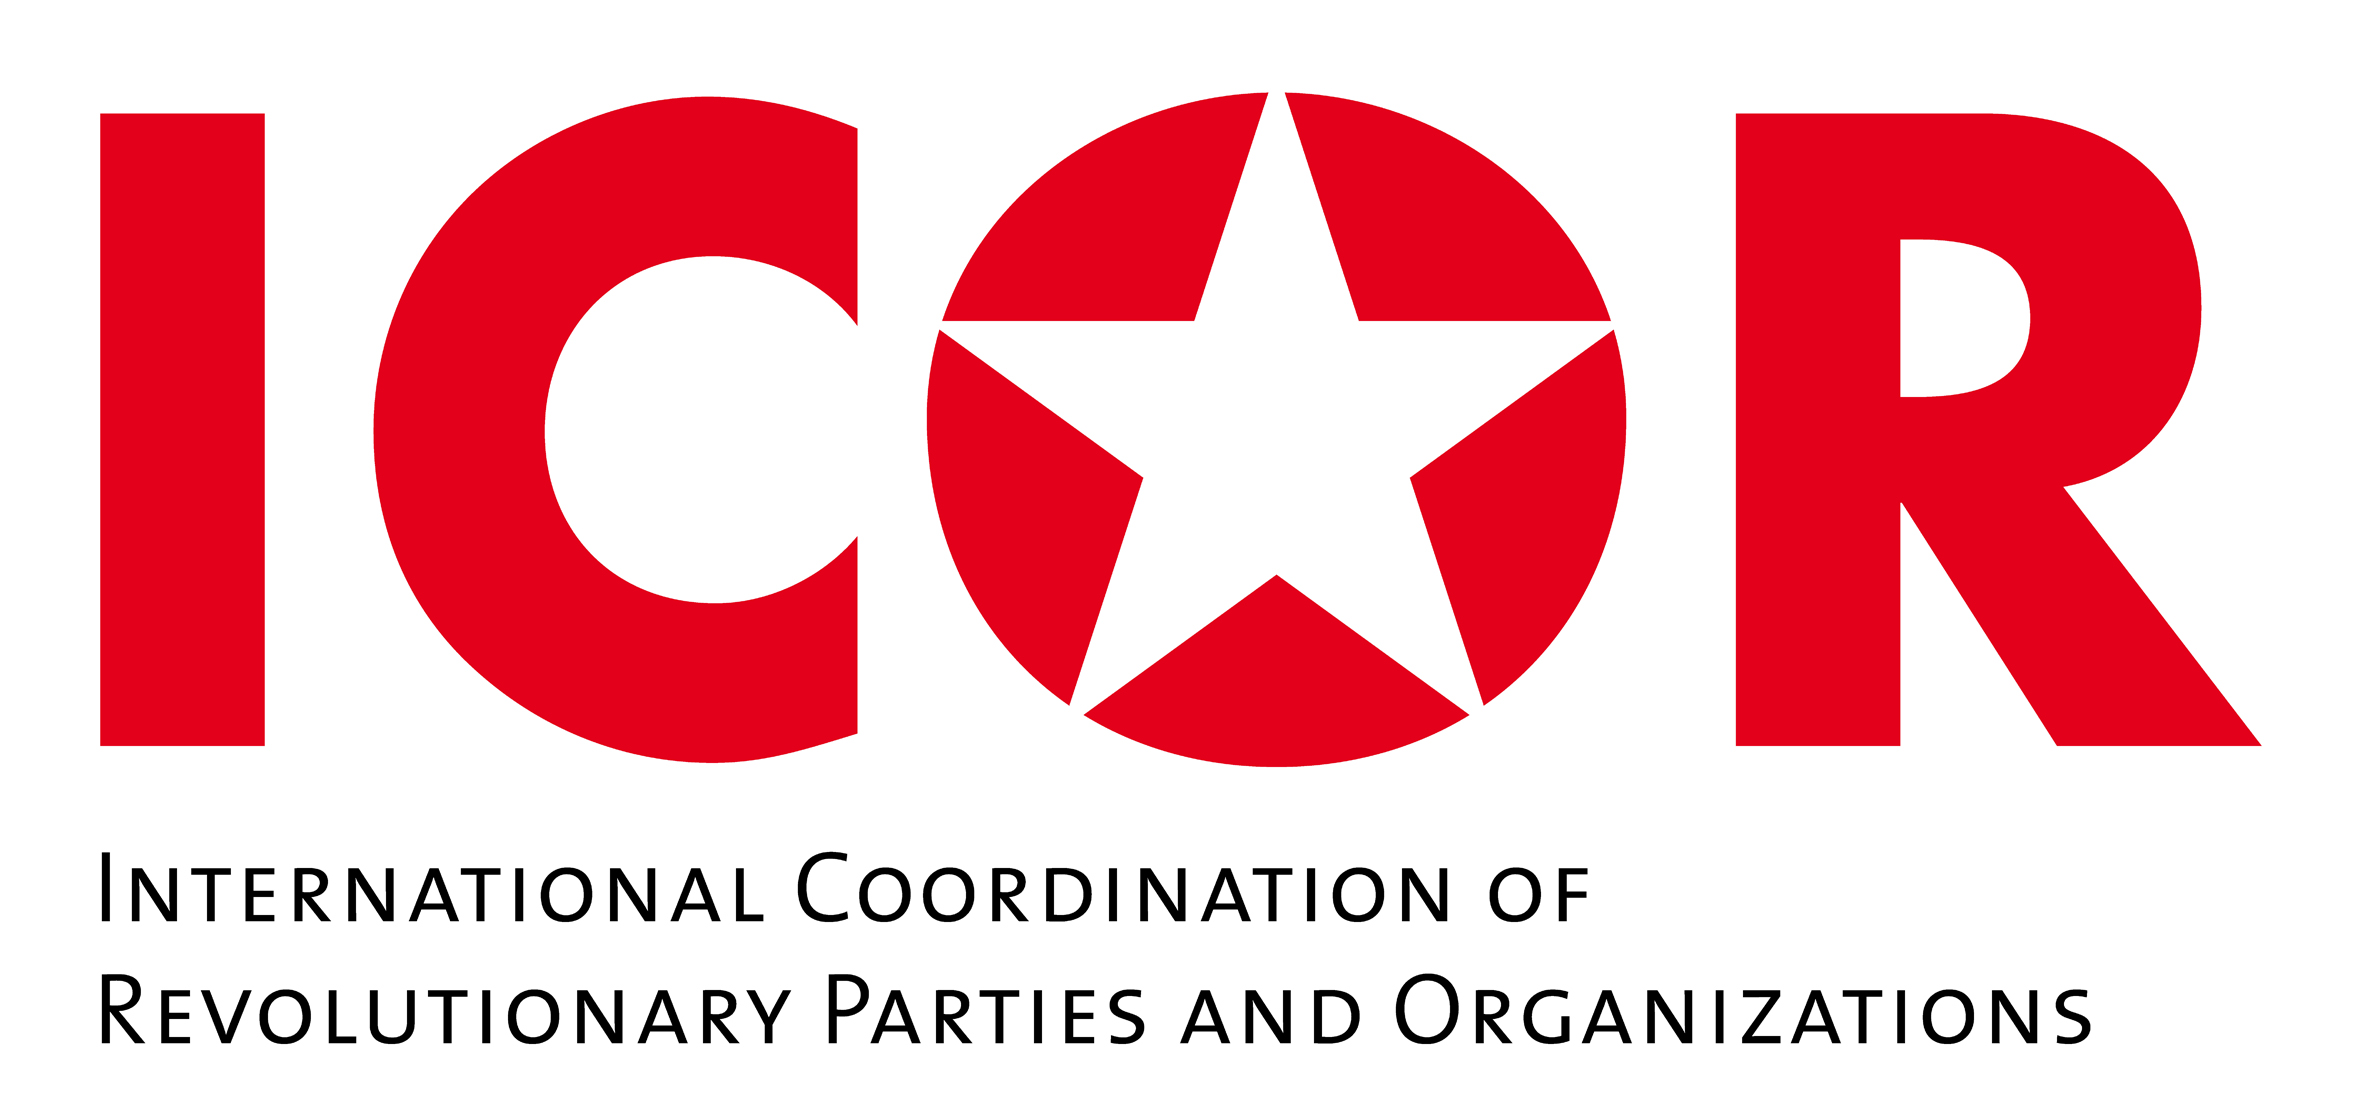 Declaration of the Continental Coordinating Committee ICOR Europe on the European Elections on 25 May 2014